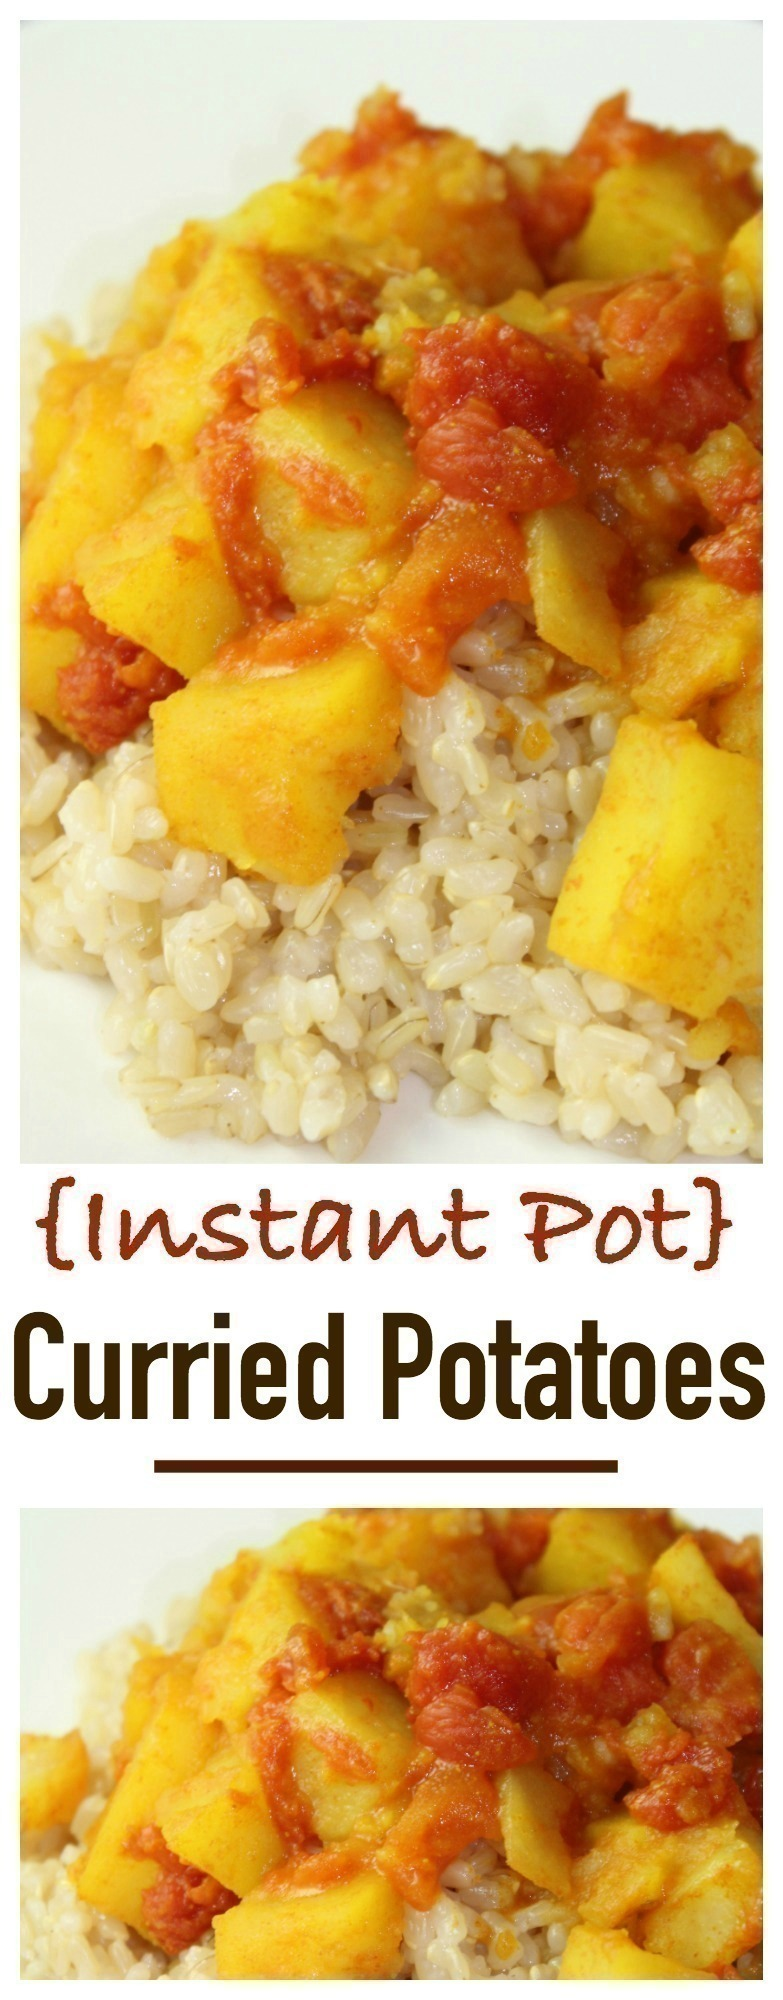 Instant Pot Curried Potatoes